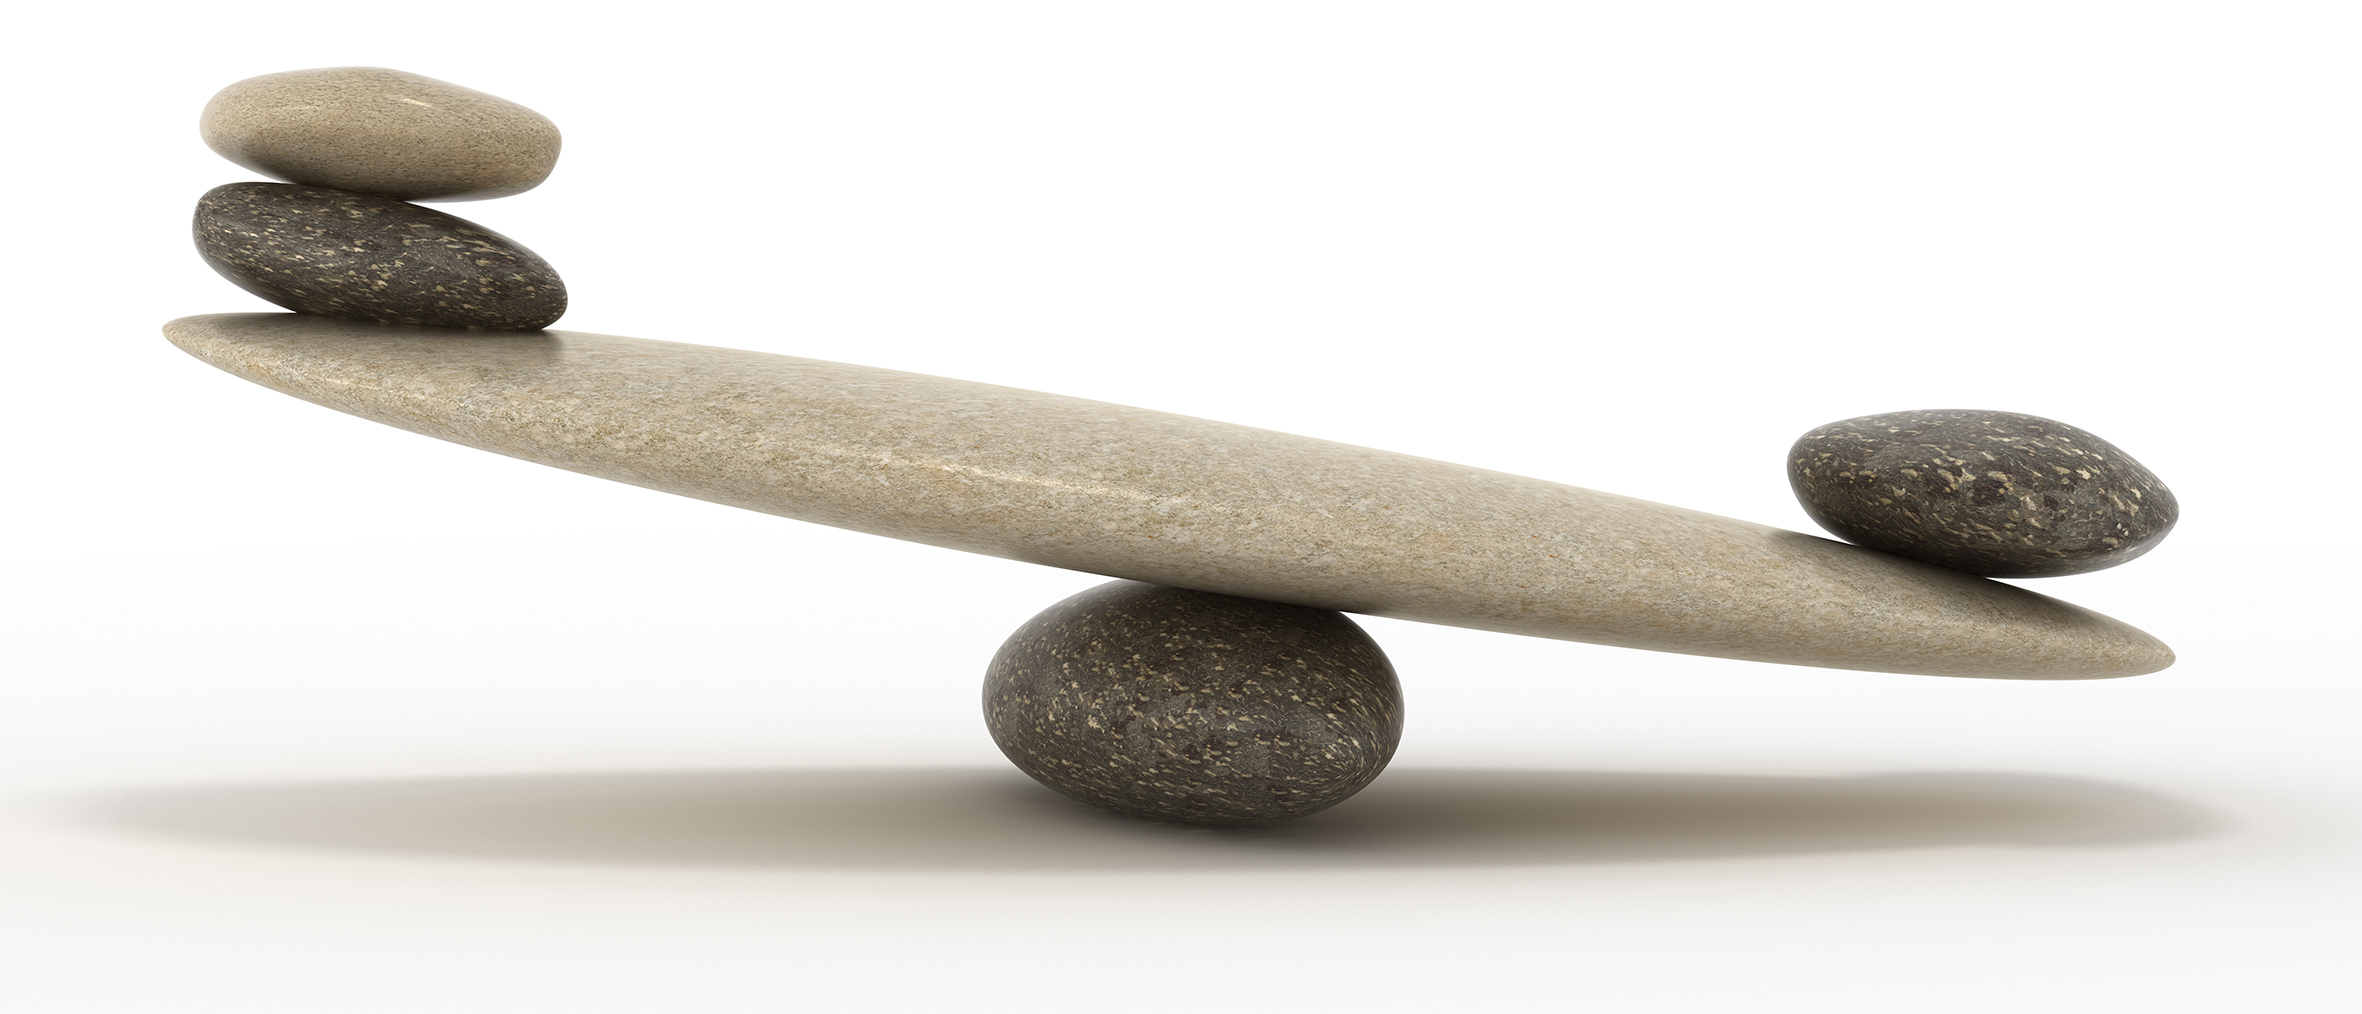 Something weighty. Pebble stability scales with large and small stones. Extralarge resolution